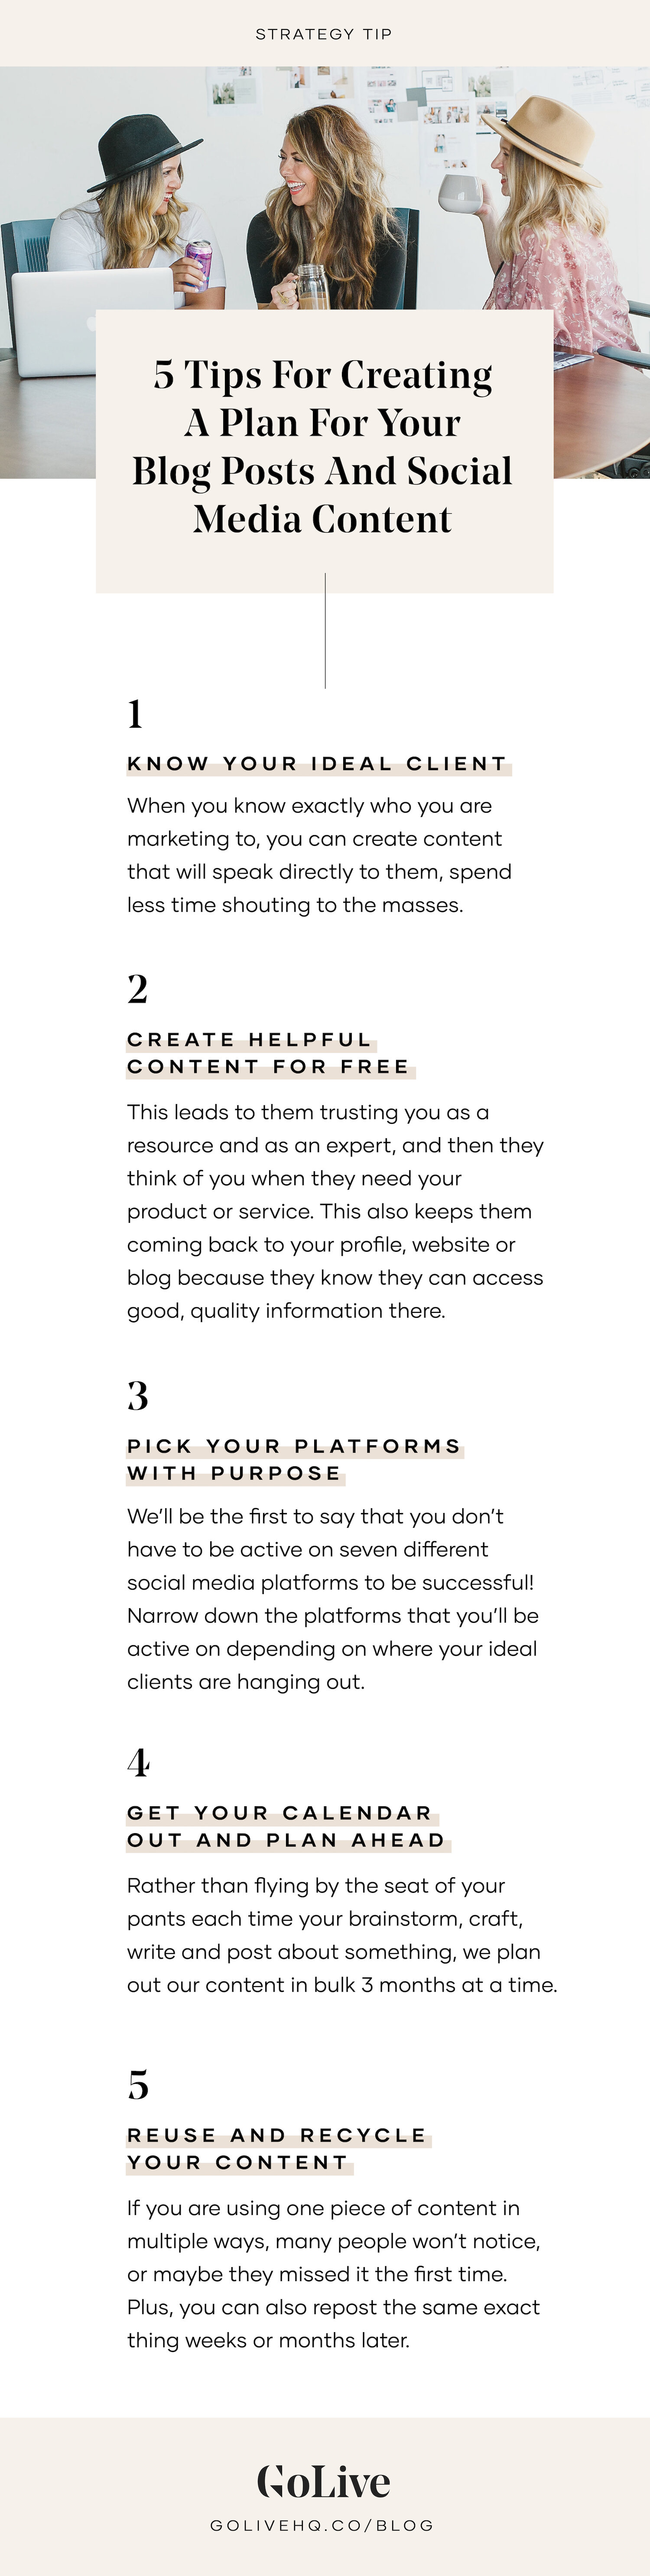 Tips+for+creating+a+social+media+and+blog+plan+_+By+GoLive.jpg